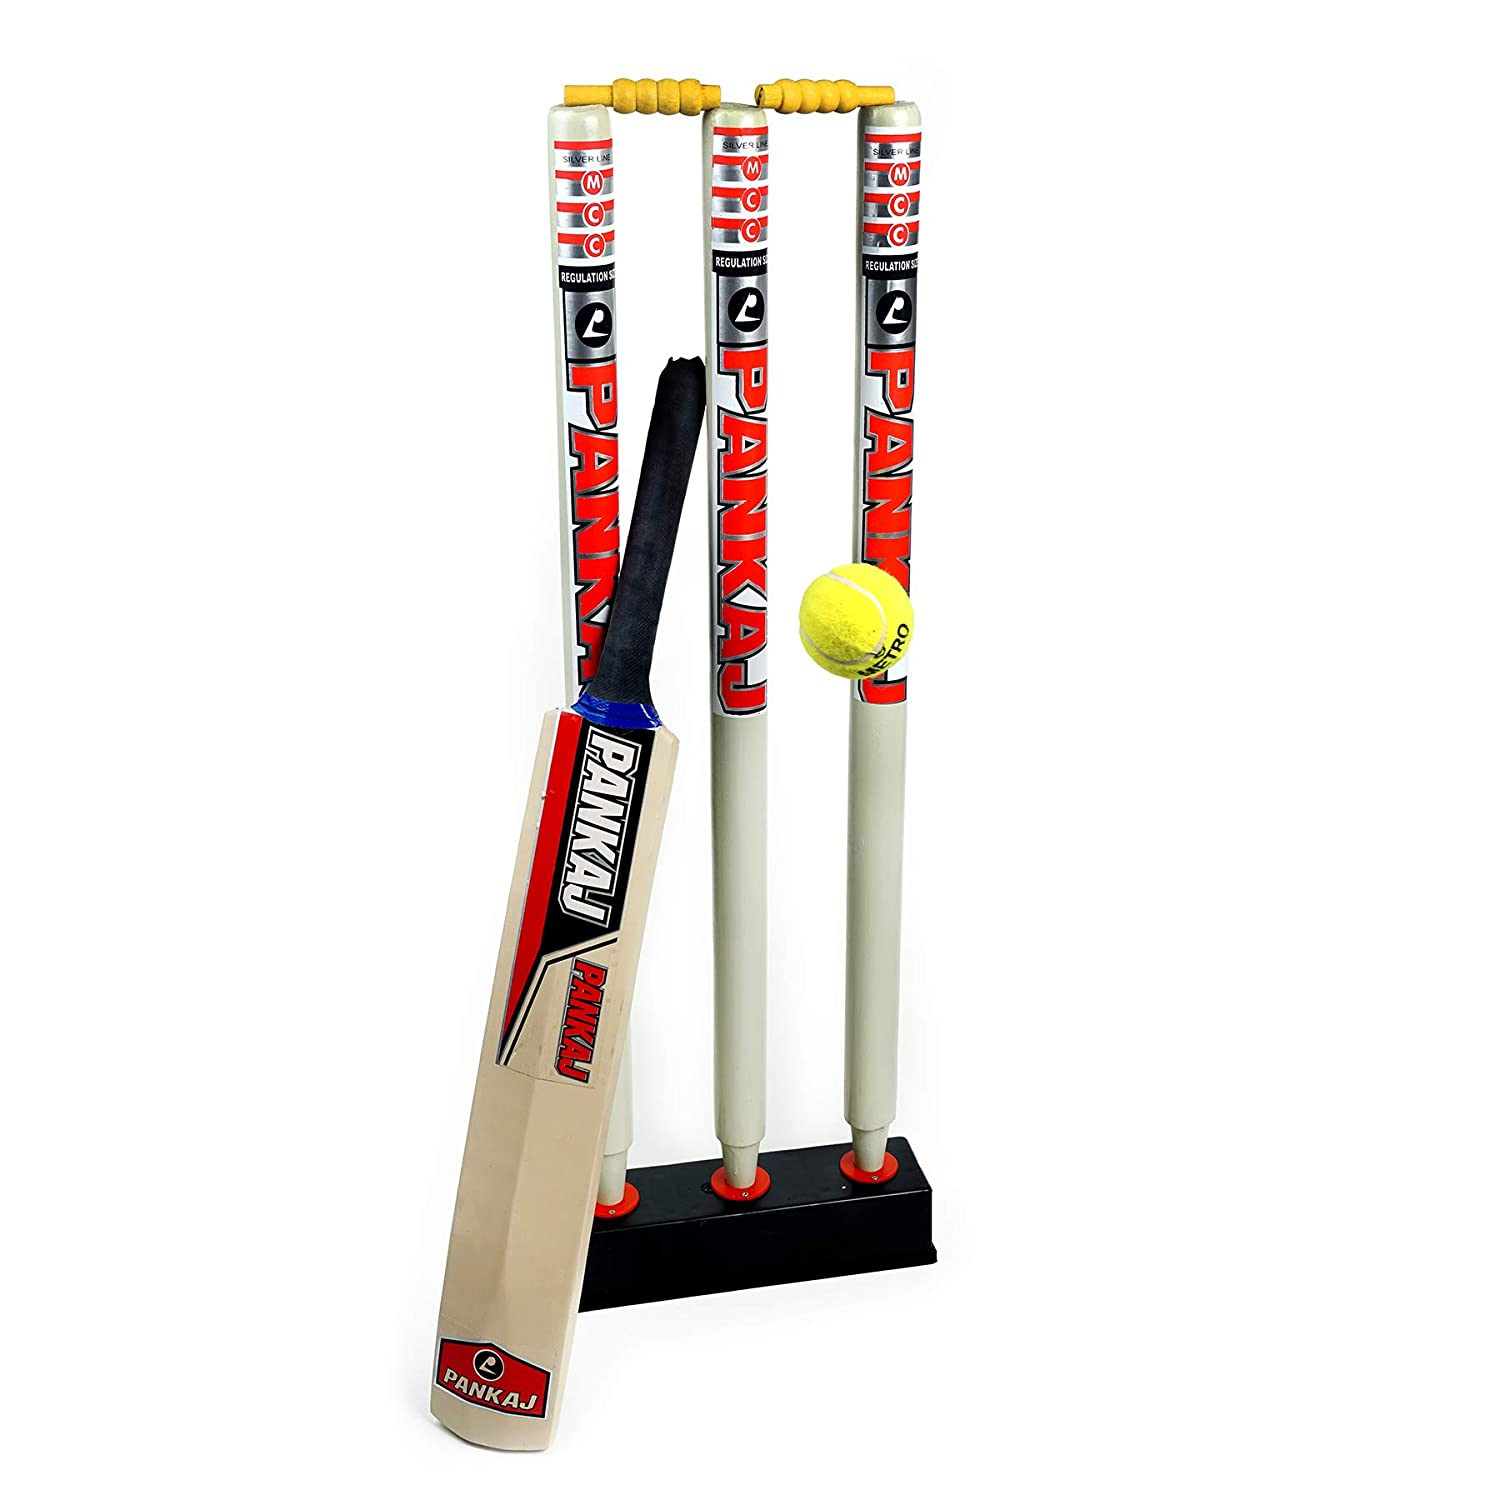 Cricket Stump Set - Best Quality - 3 Stumps + Stand + Bat + Ball